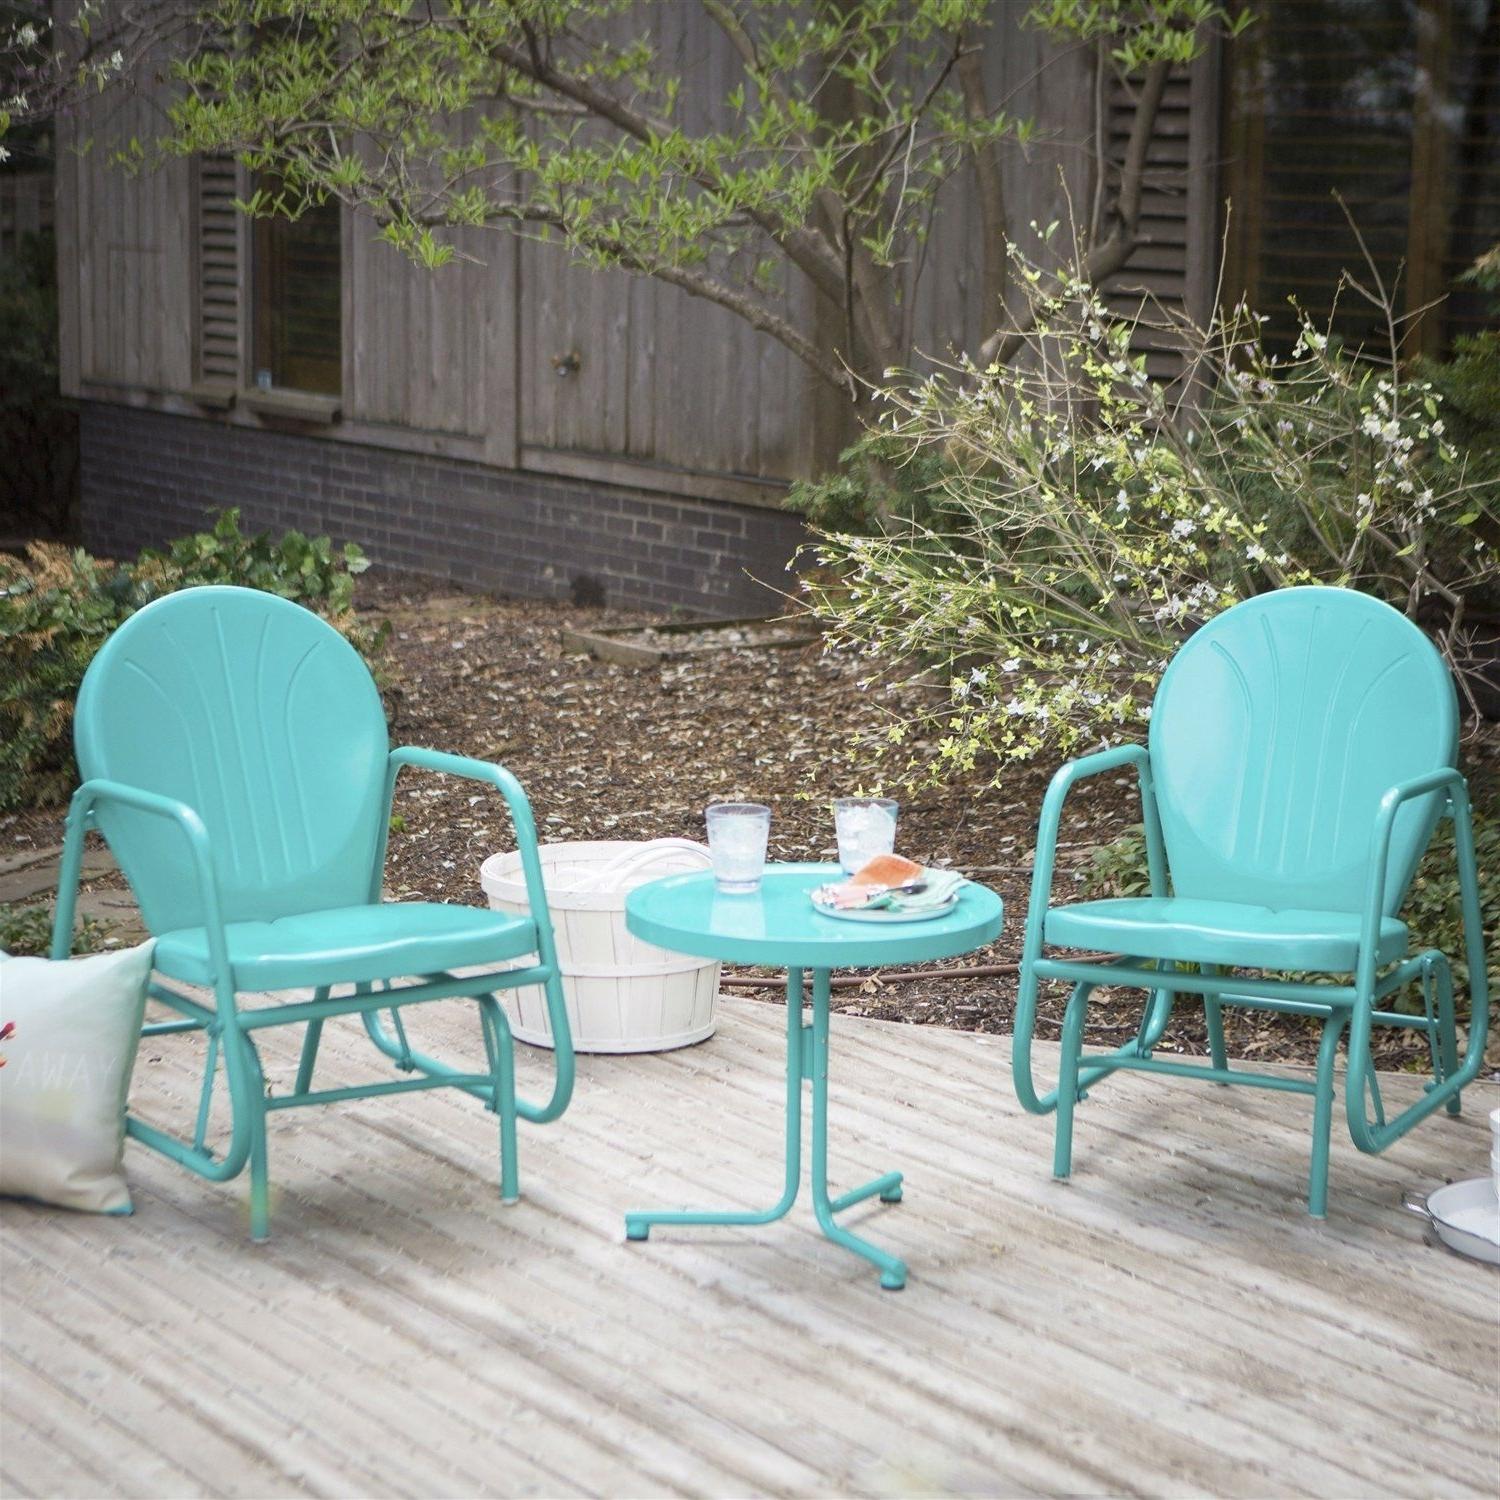 Outdoor 3 Piece Retro Turquoise Blue Patio Furniture Glider Chair Within Famous Patio Conversation Sets With Glider (View 9 of 15)